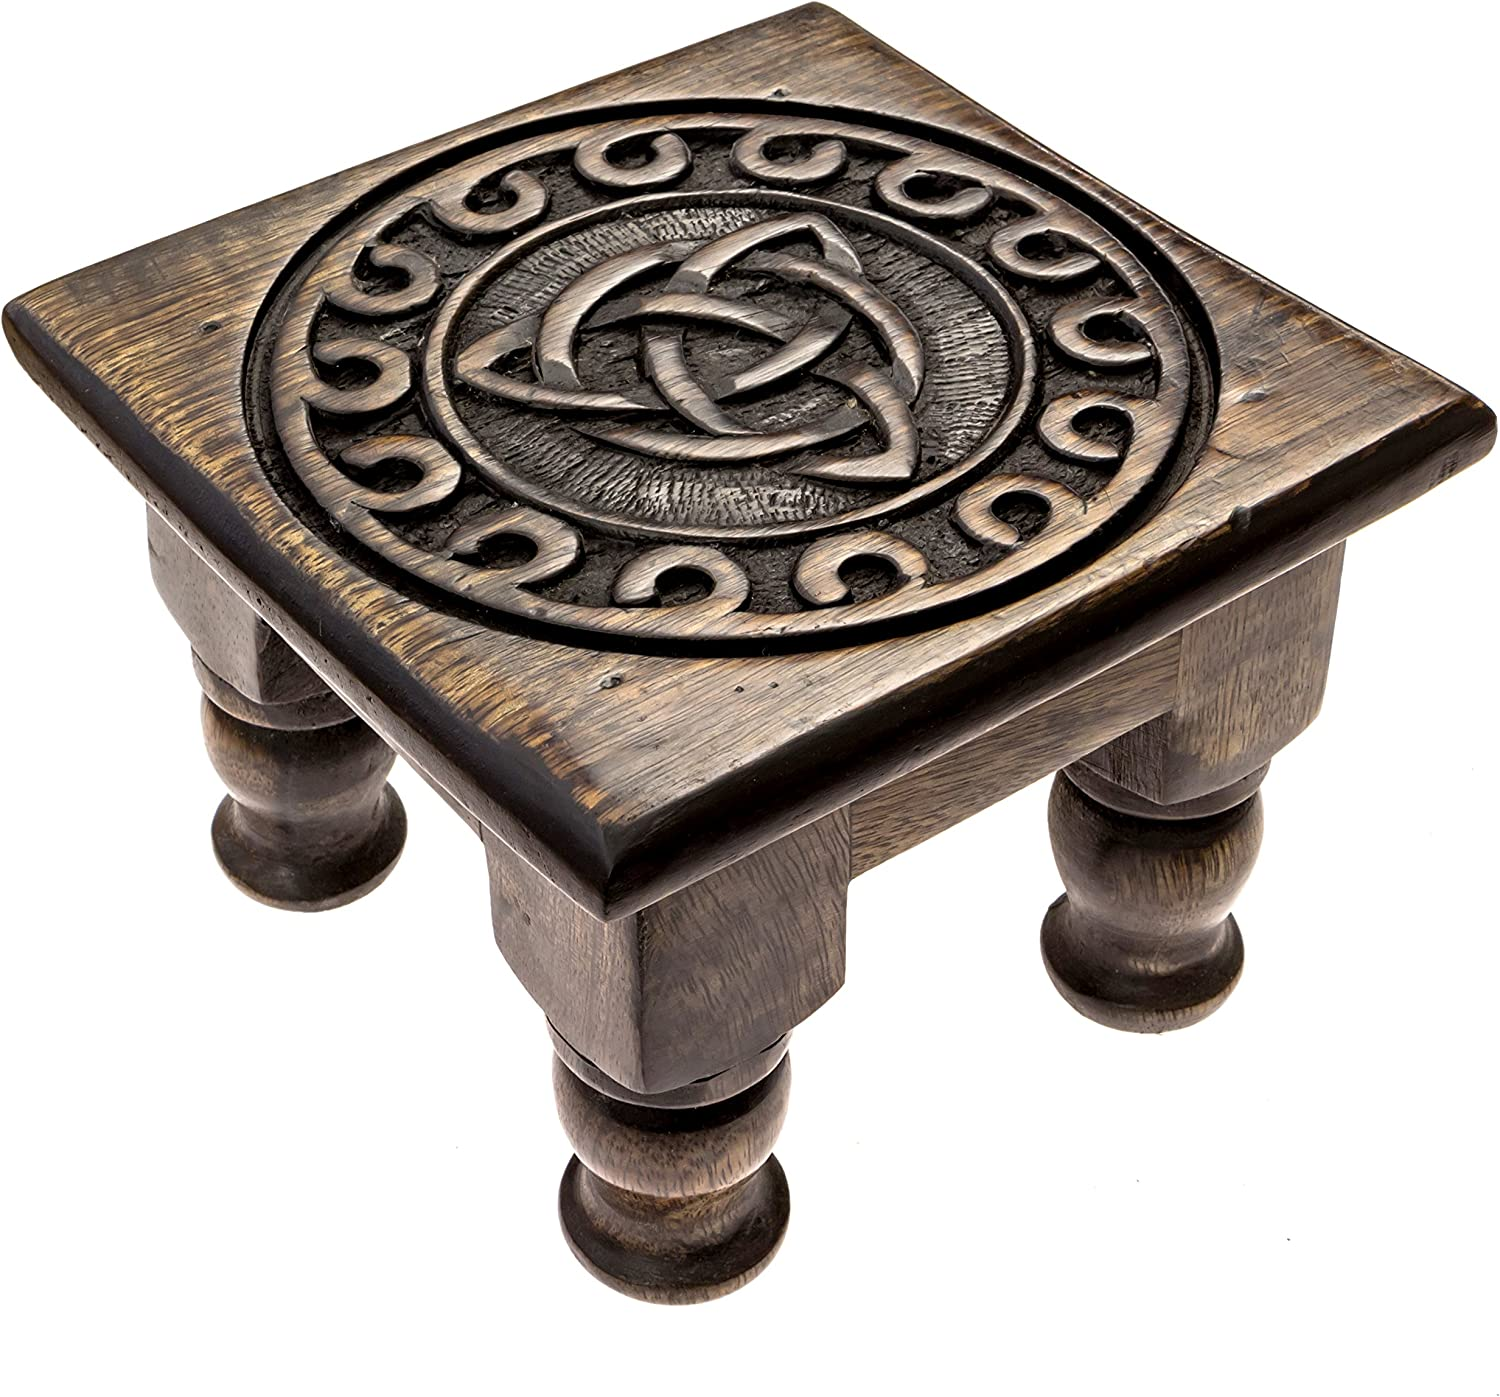 Carved Wooden Triquetra Altar Table - 6 Inches Wide, 4 Inches Tall